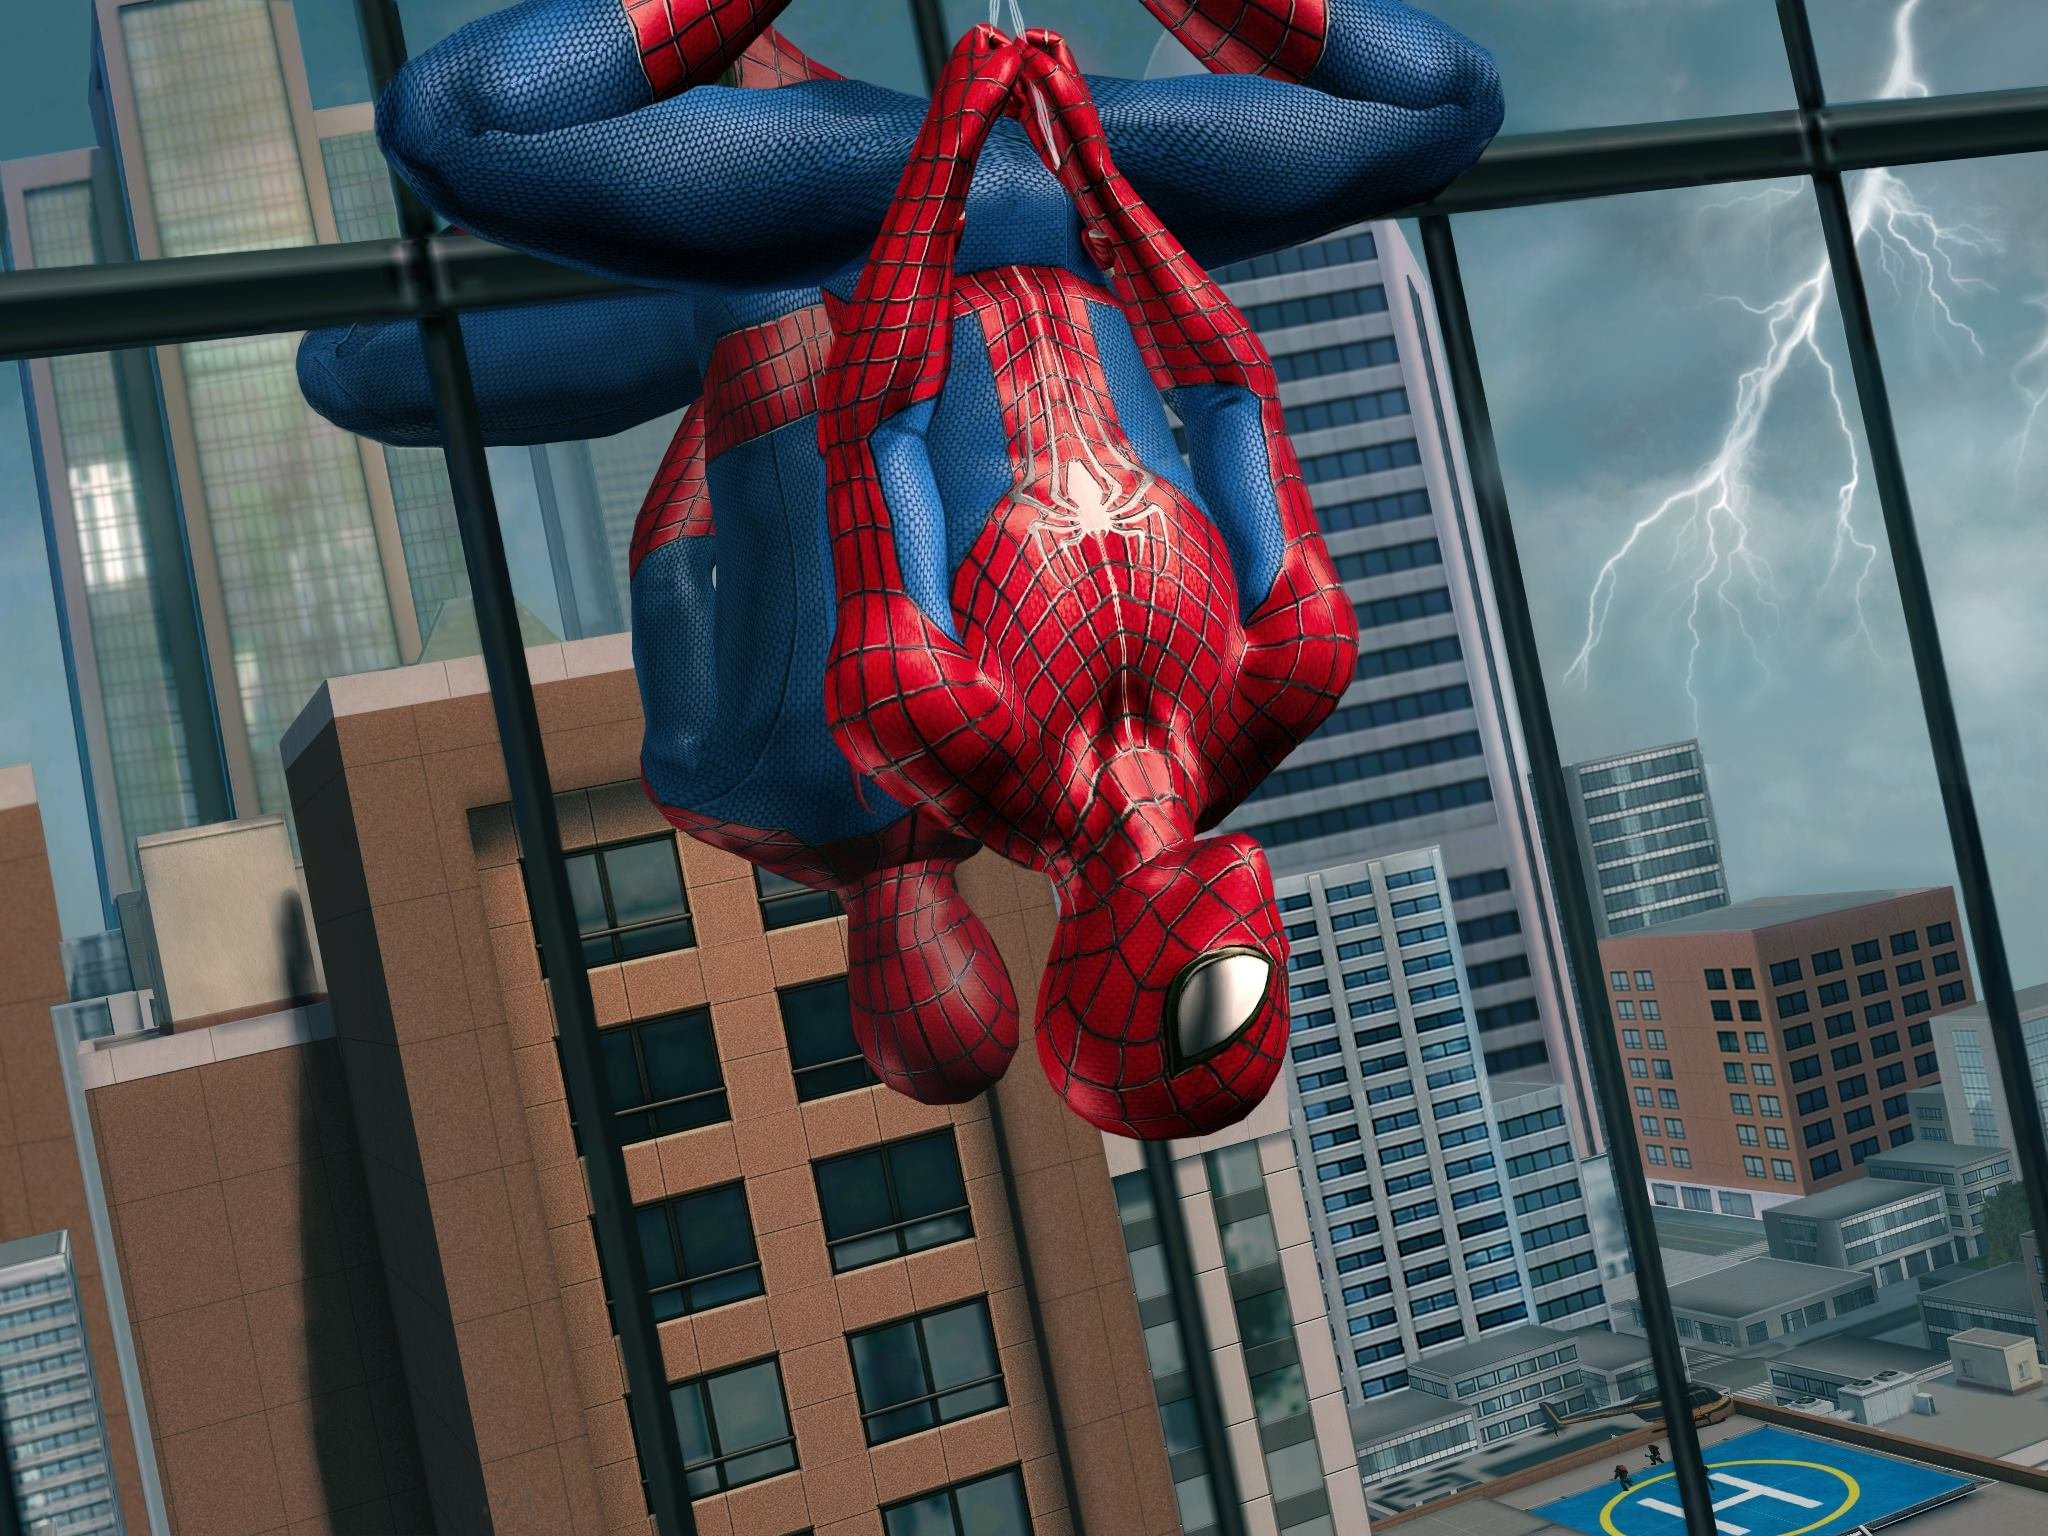 [Update] Our IAP sense is tingling: The Amazing Spider-Man 2 now out for iOS and Android